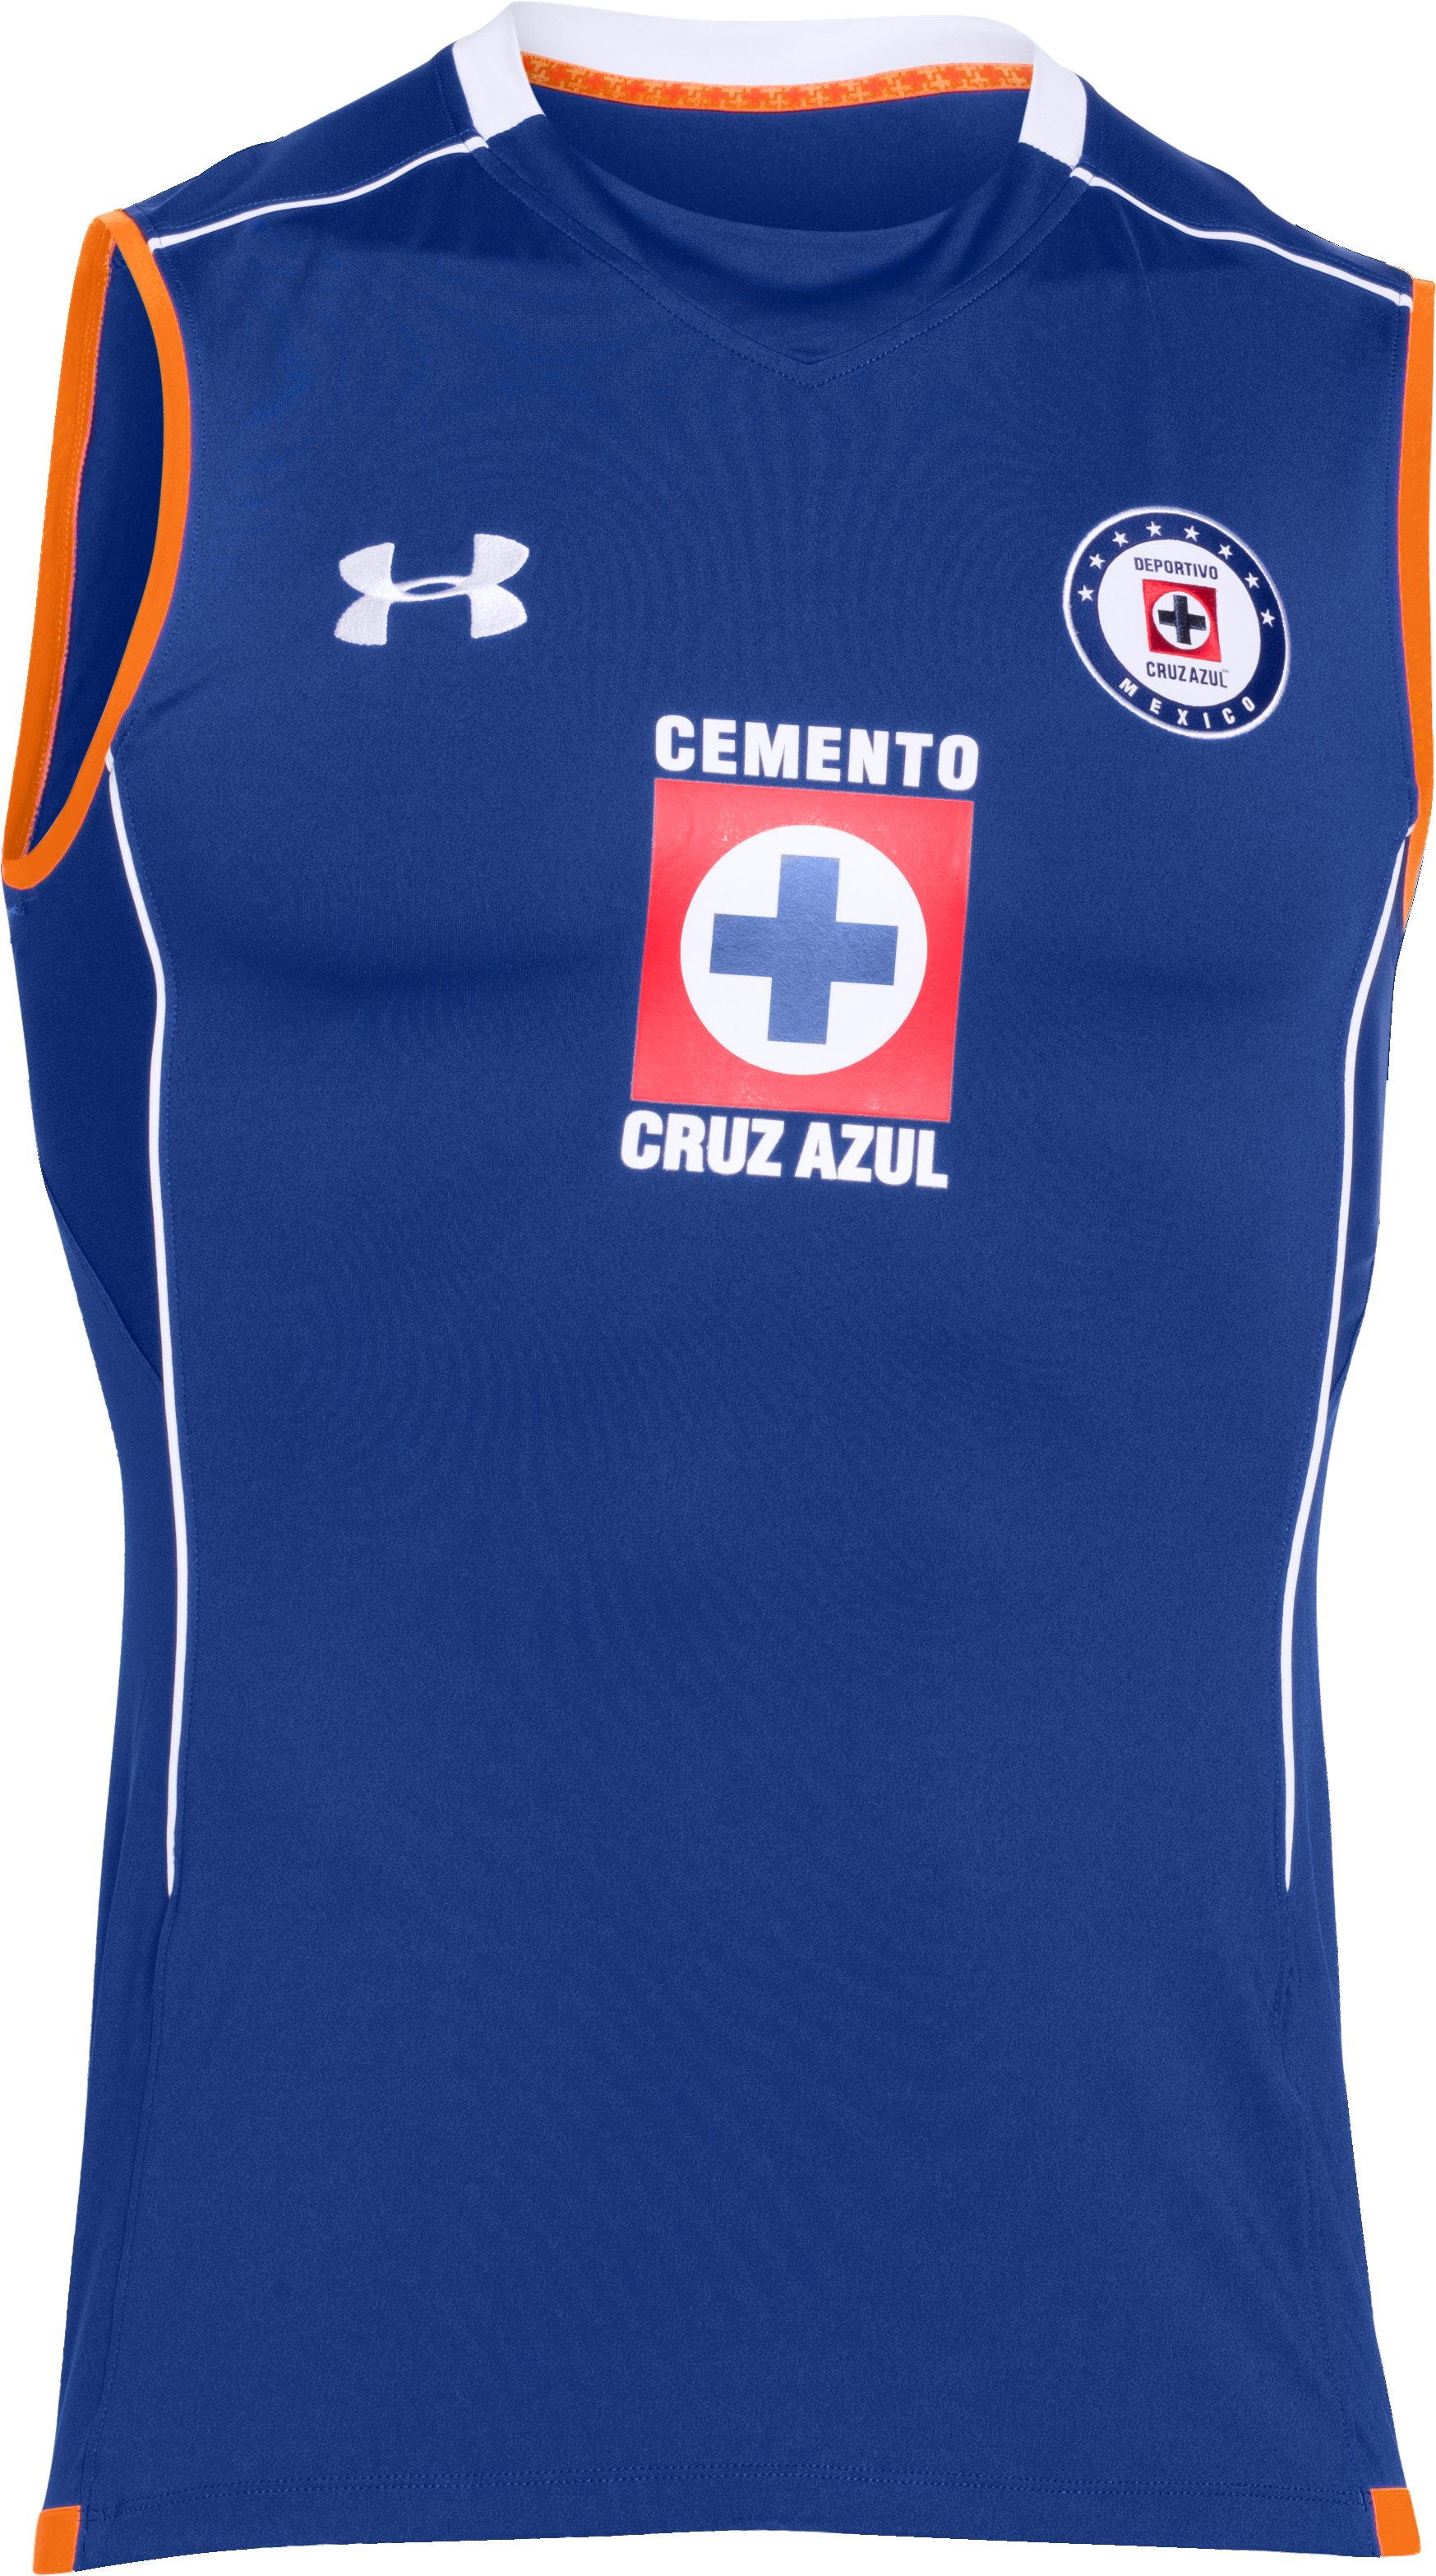 Men's Cruz Azul 15/16 Training Sleeveless Shirt, Royal,